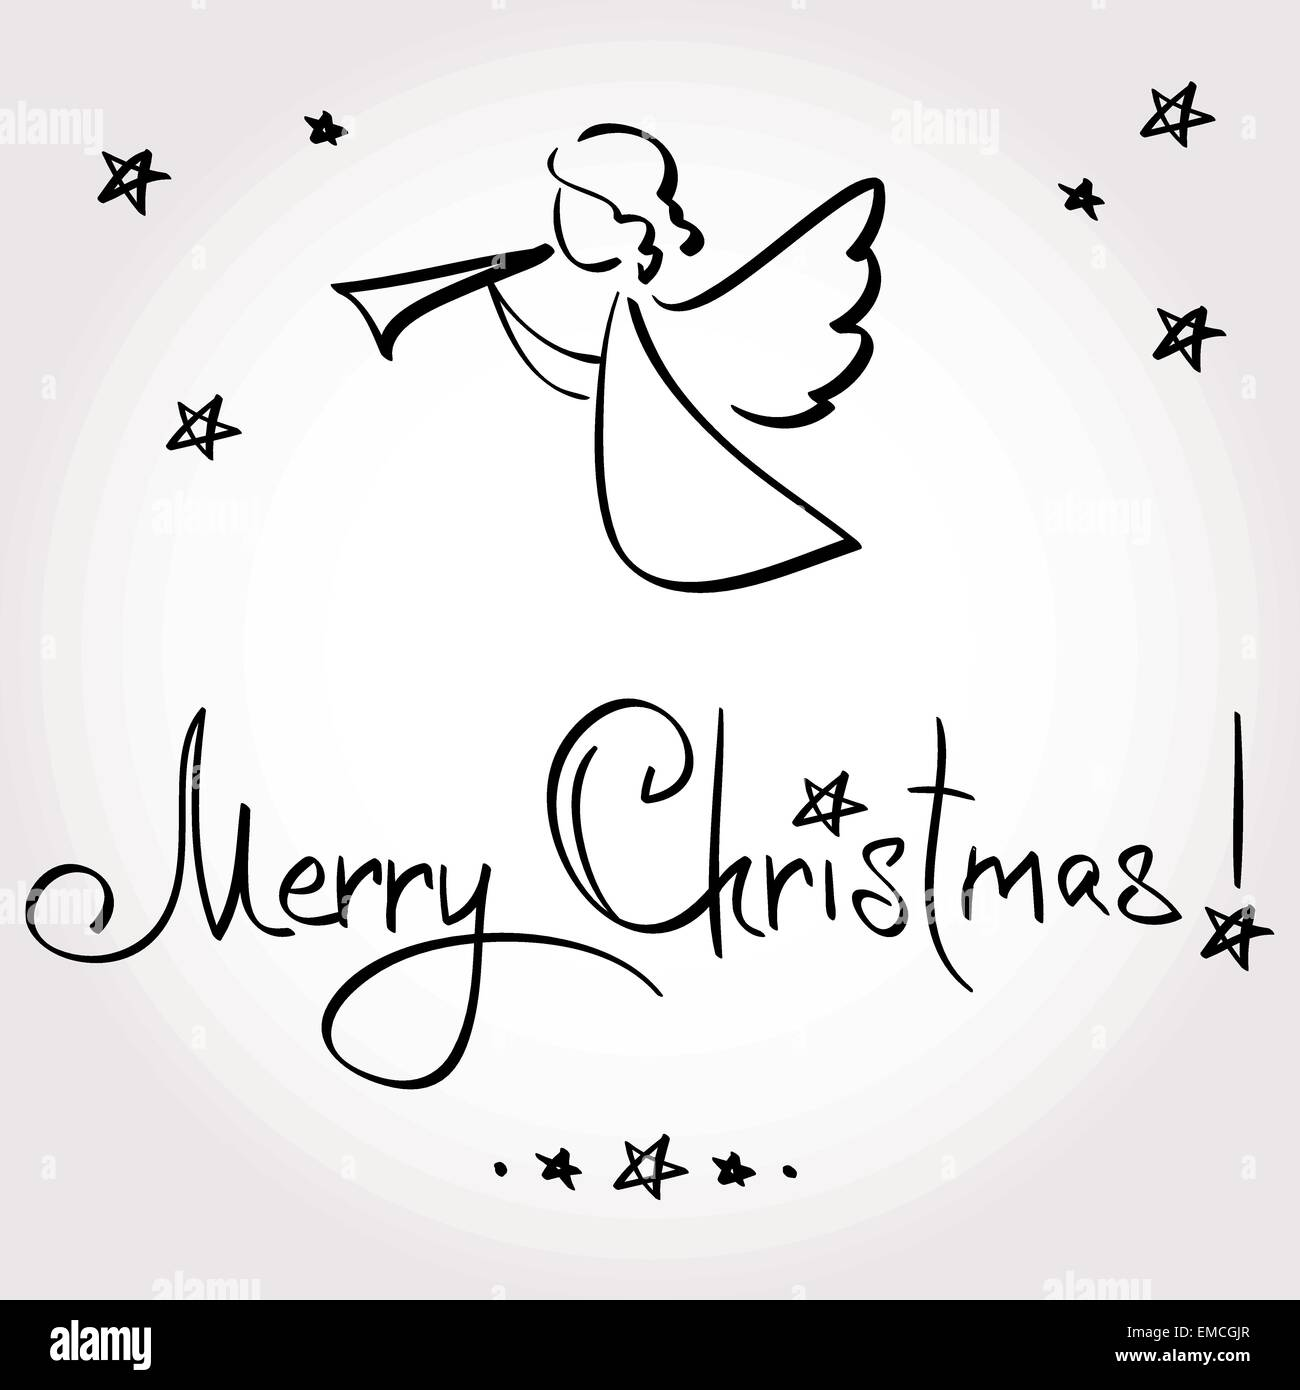 Christmas Card with Angel Stock Vector Image & Art   Alamy